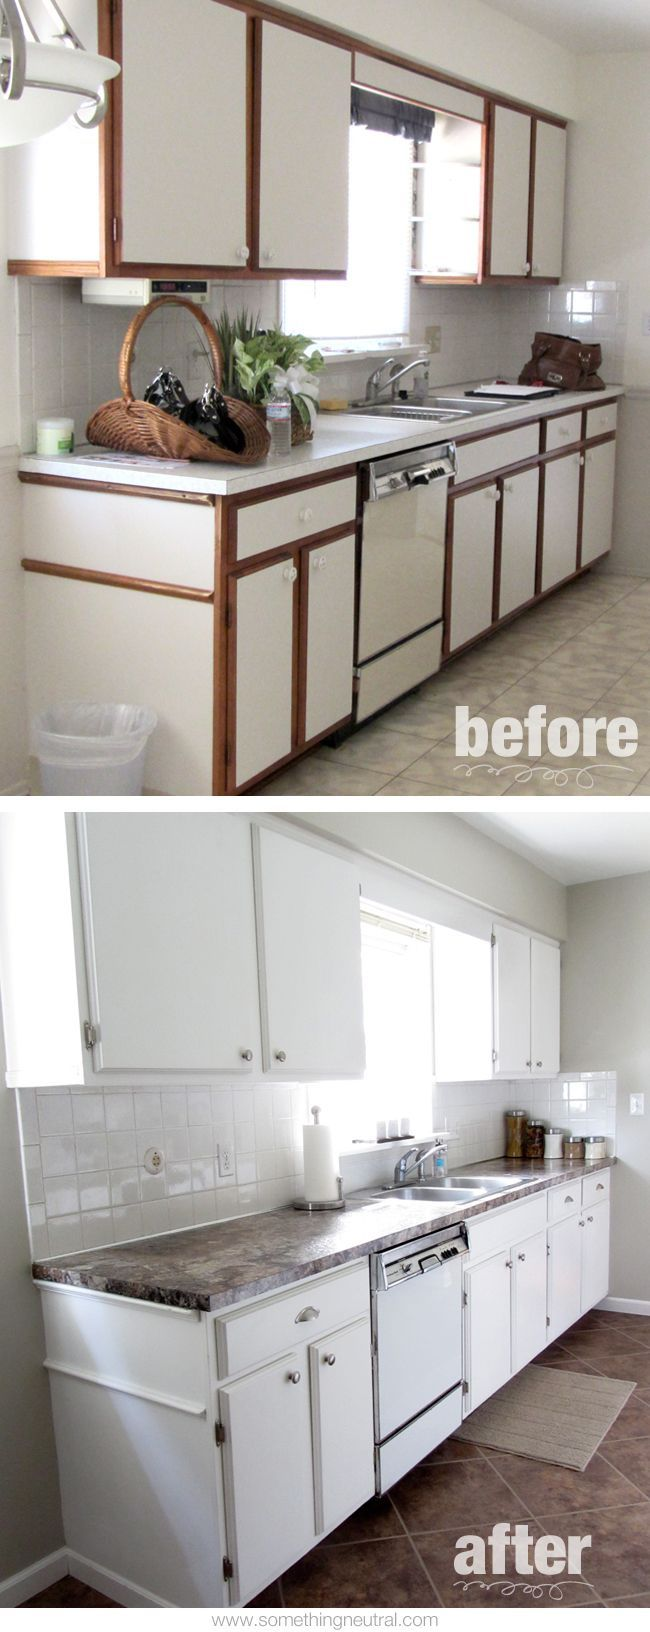 Paint Over formica Cabinets 2020 in 2020 | Budget kitchen ...